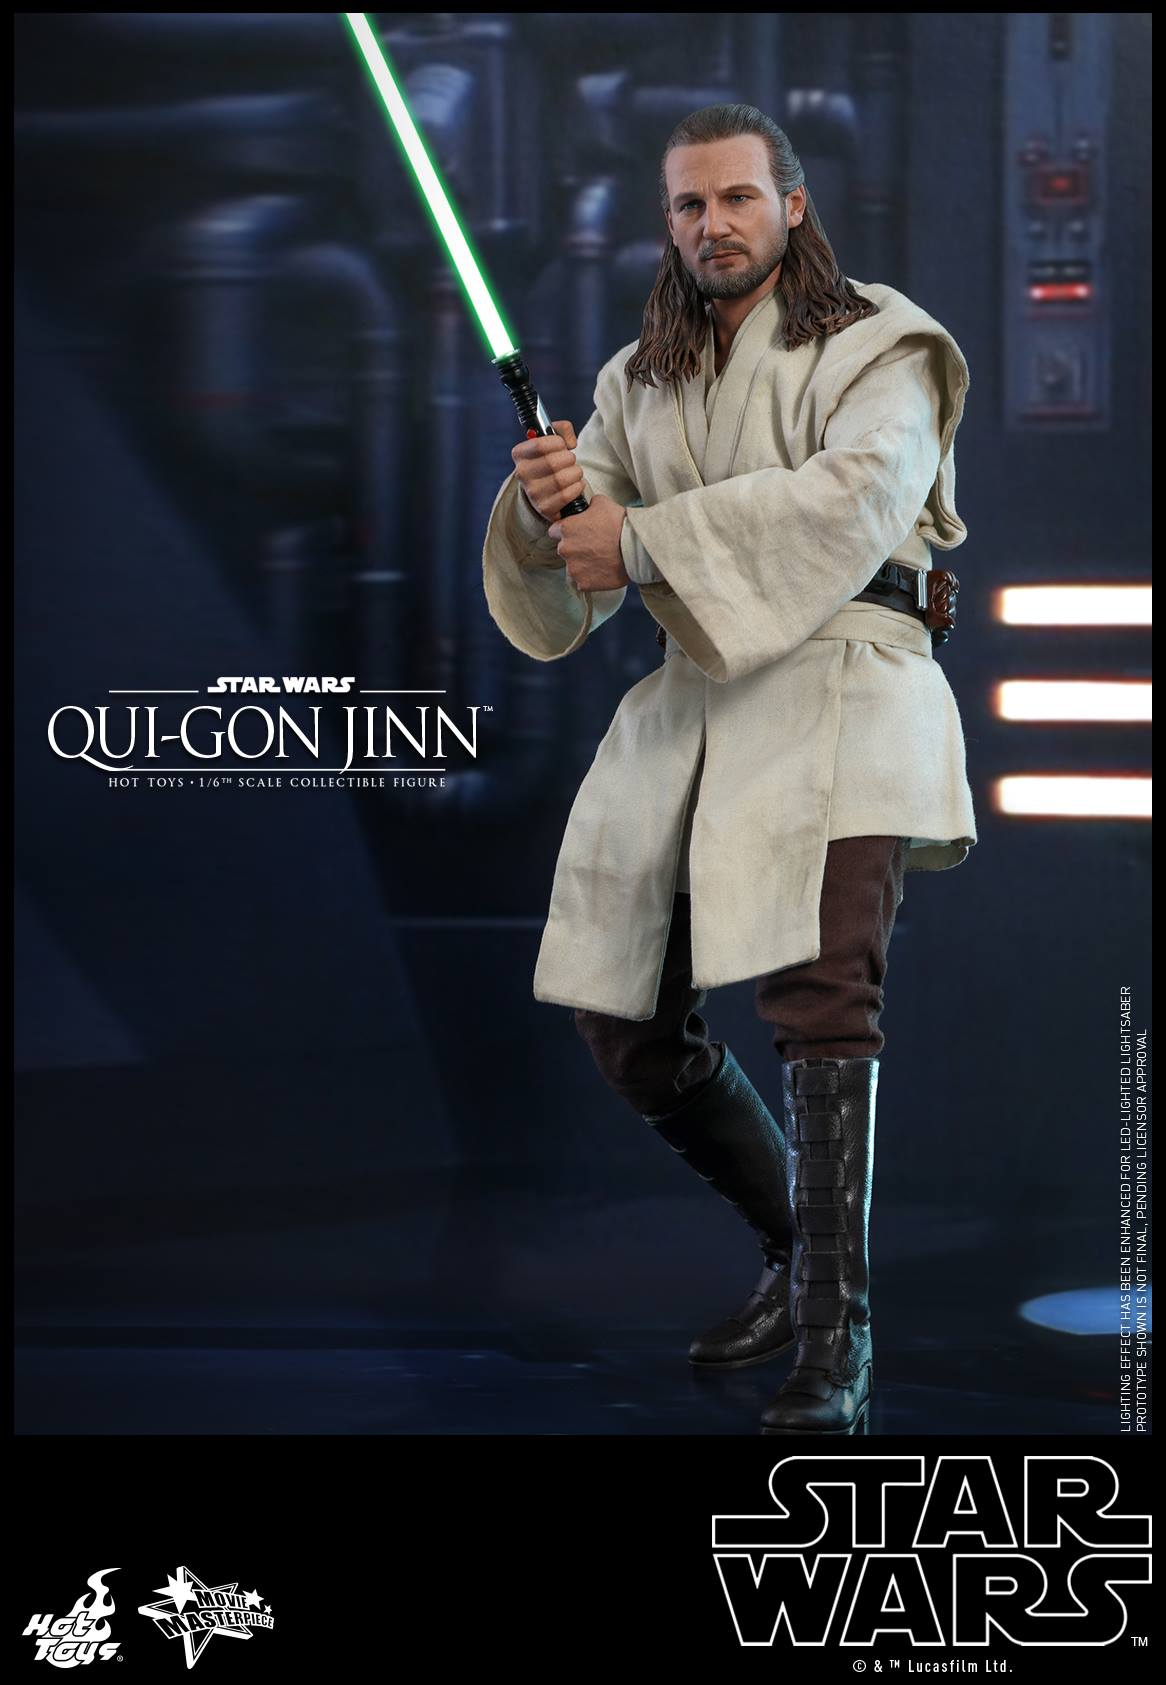 Pre-Order Hot Toys Star Wars Qui-Gon Jinn 1:6th Figure